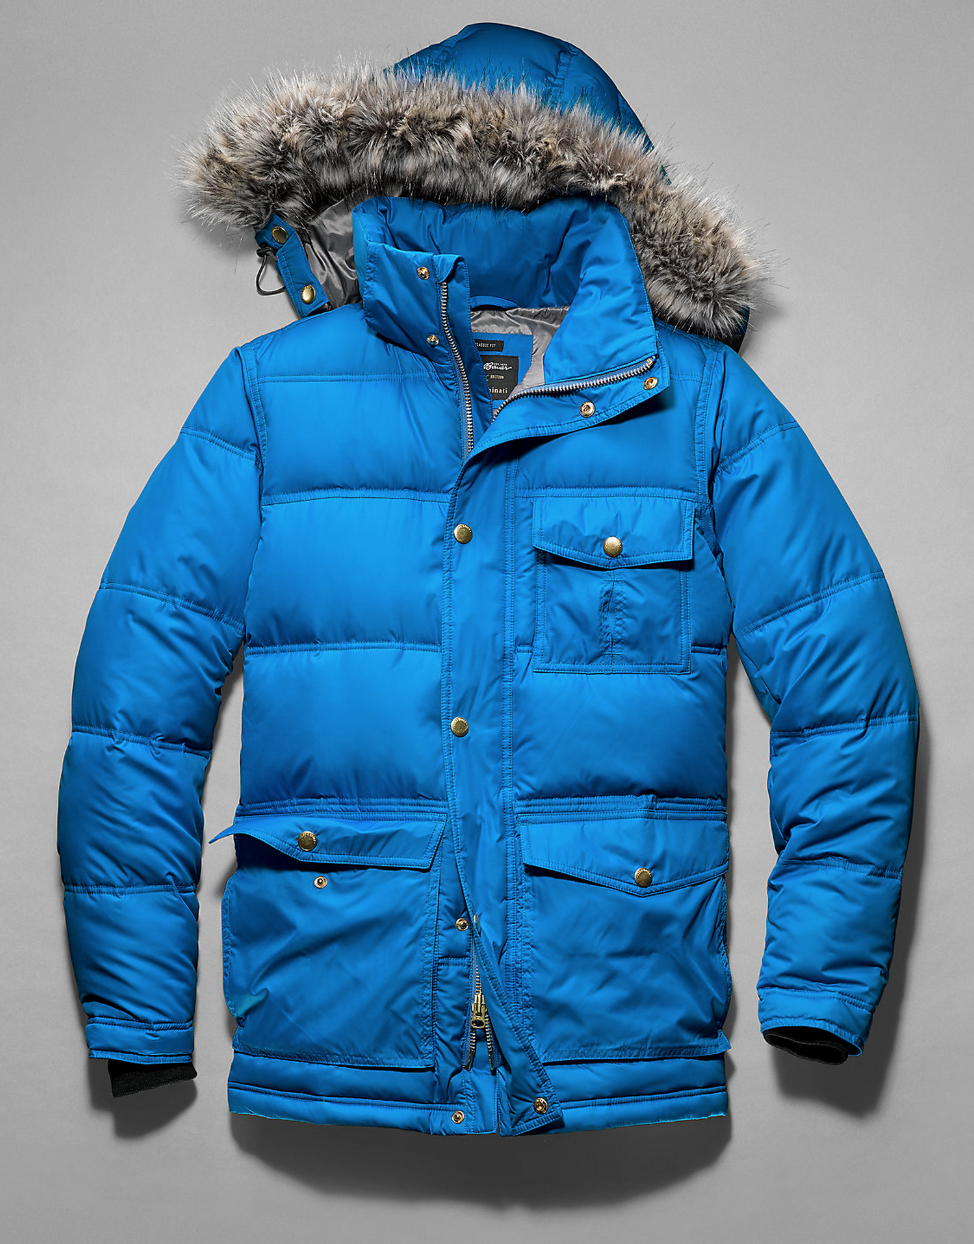 d851fcafb9138 Men s Modified Kara Koram Down Parka. Inspired by Eddie s original 1953  Kara Koram that was built for the legendary Third American Karakoram  Expedition and ...